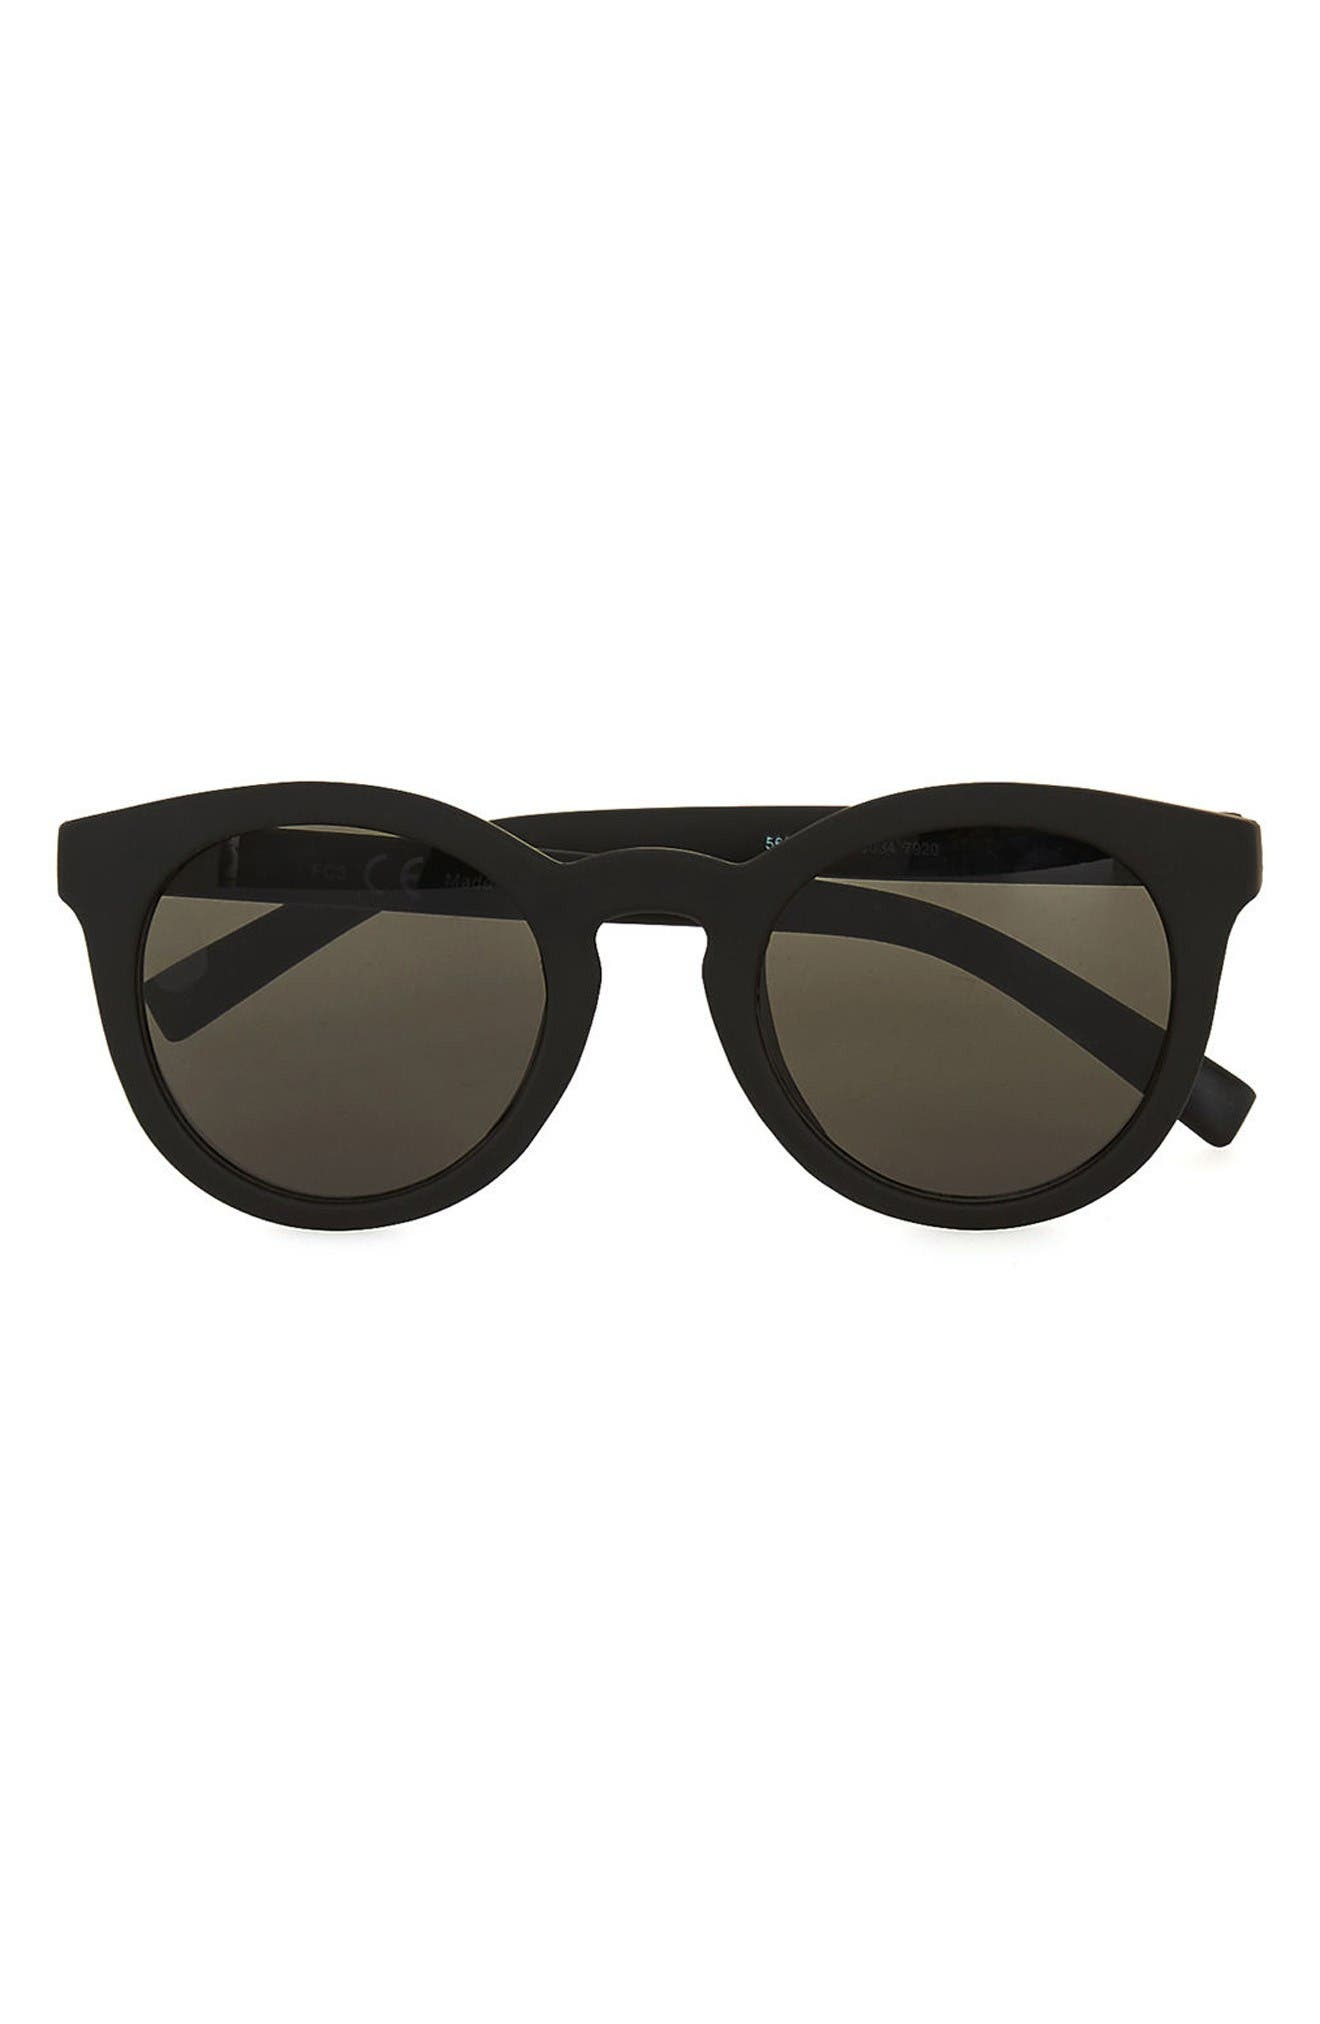 Alternate Image 1 Selected - Topman 46mm Rubberized Round Sunglasses